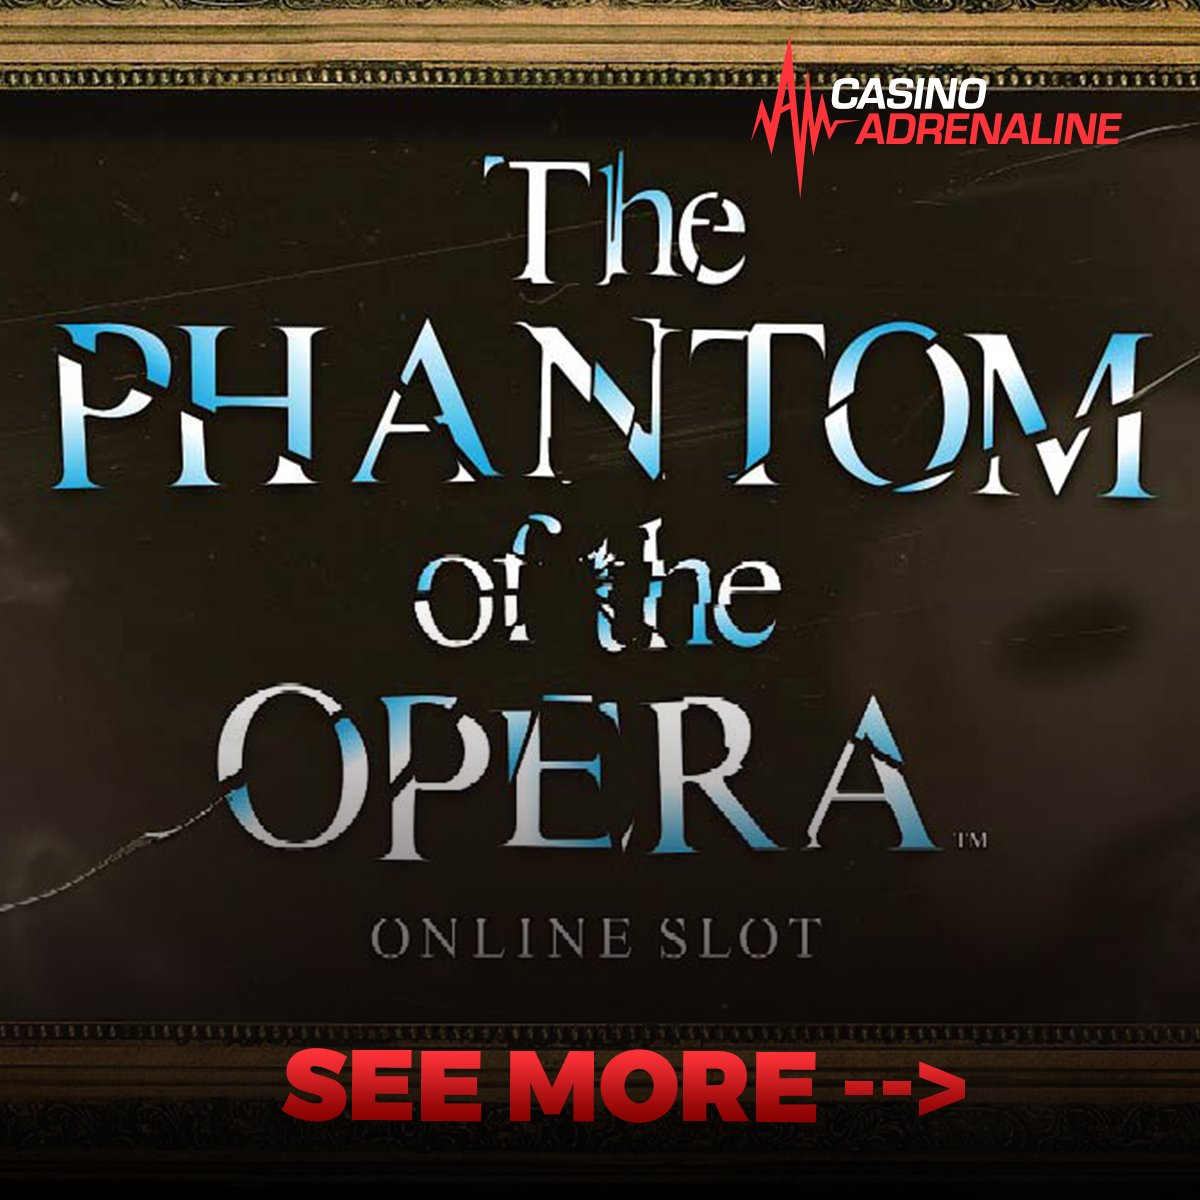 test Twitter Media - One of our favorite video slots is Phantom of the opera! See more on https://t.co/mhAn1A21ac https://t.co/GA9zly35Fi